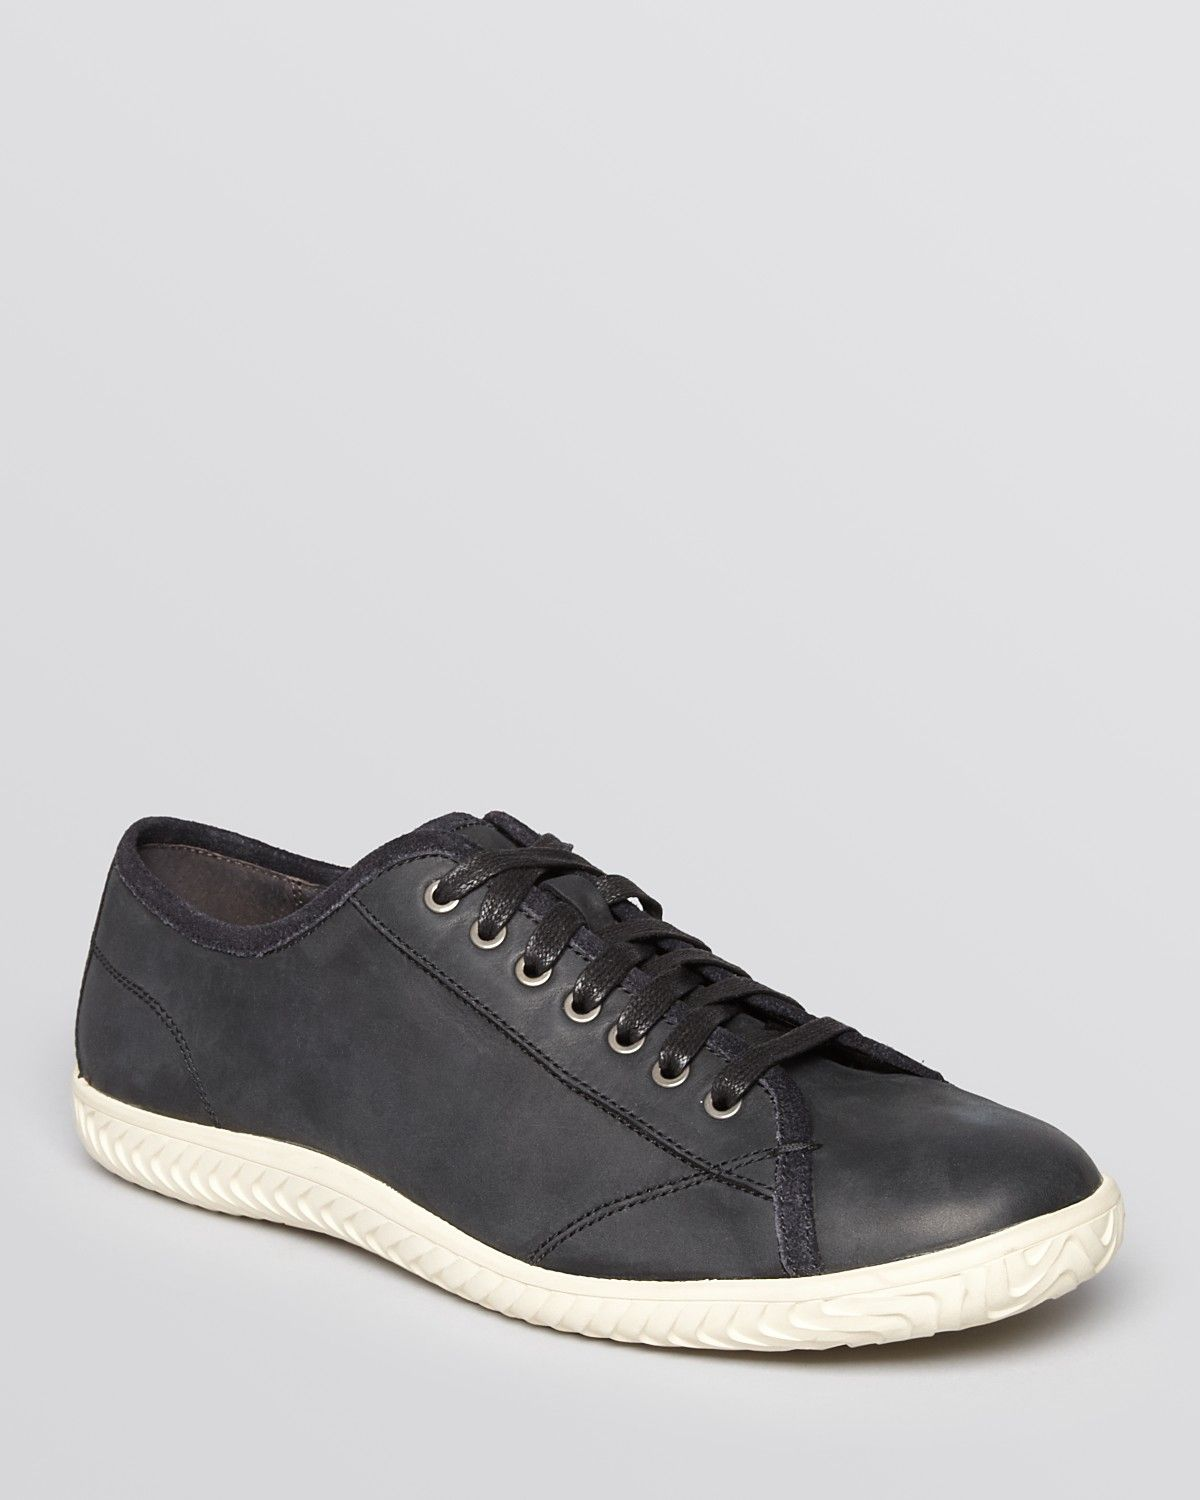 John Varvatos Star Usa Hattan Low Top Sneakers | Rubber/leather | Imported  | Fits